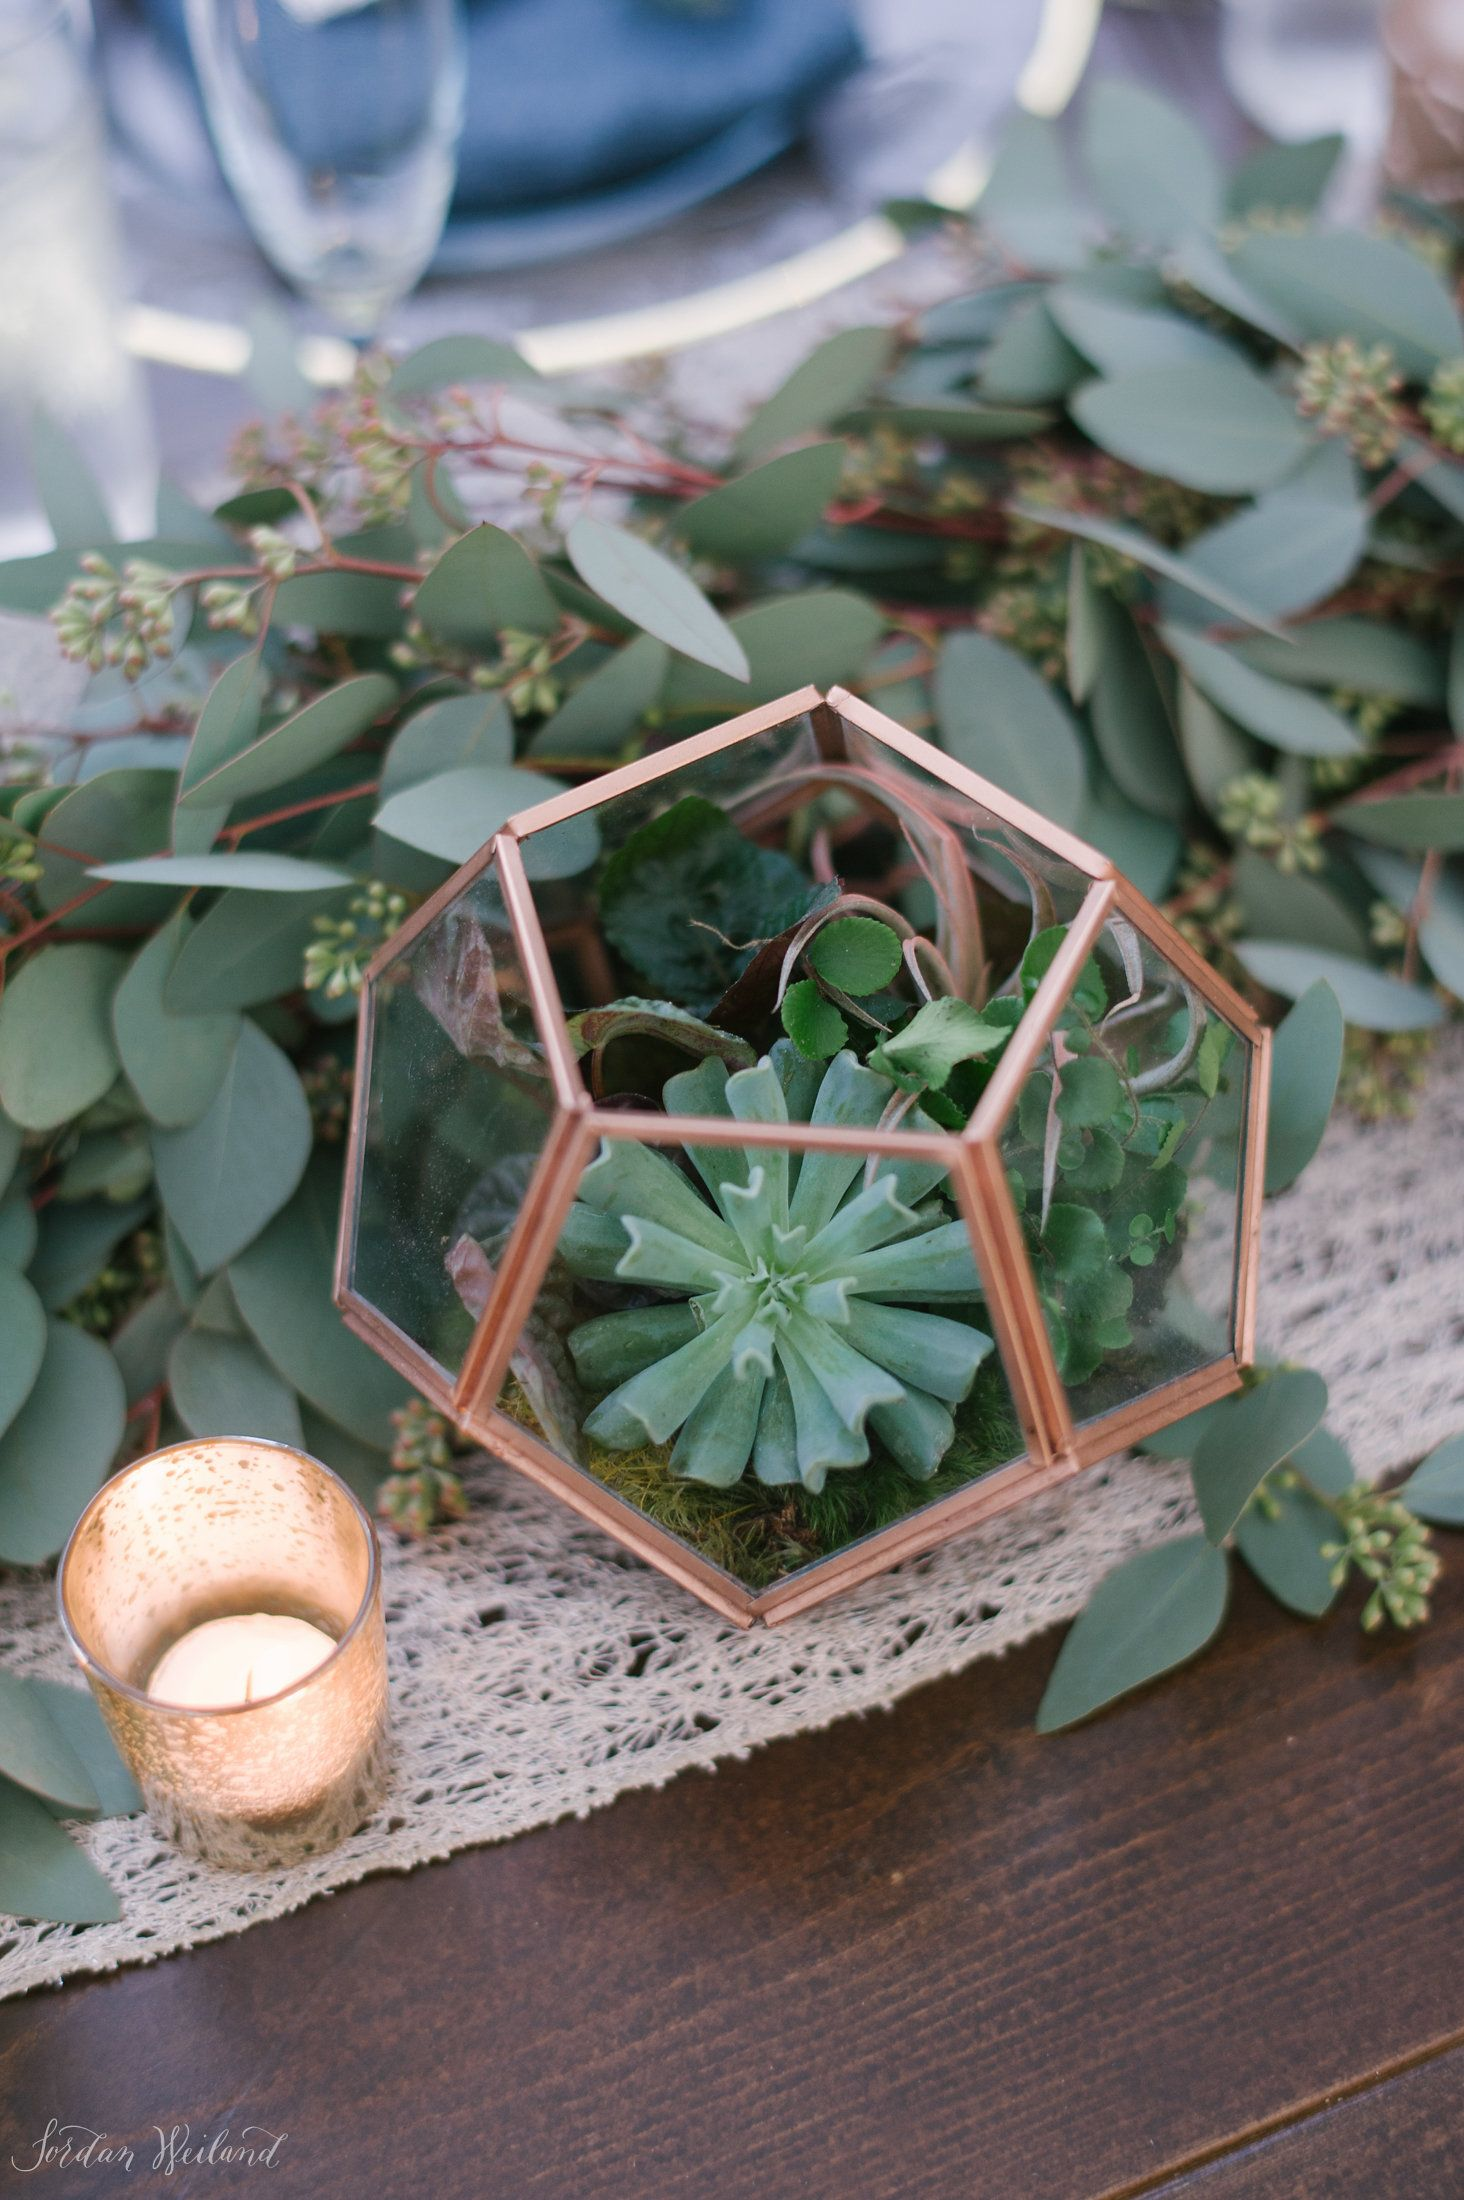 Copper terrariums filled with succulents air plants and live moss